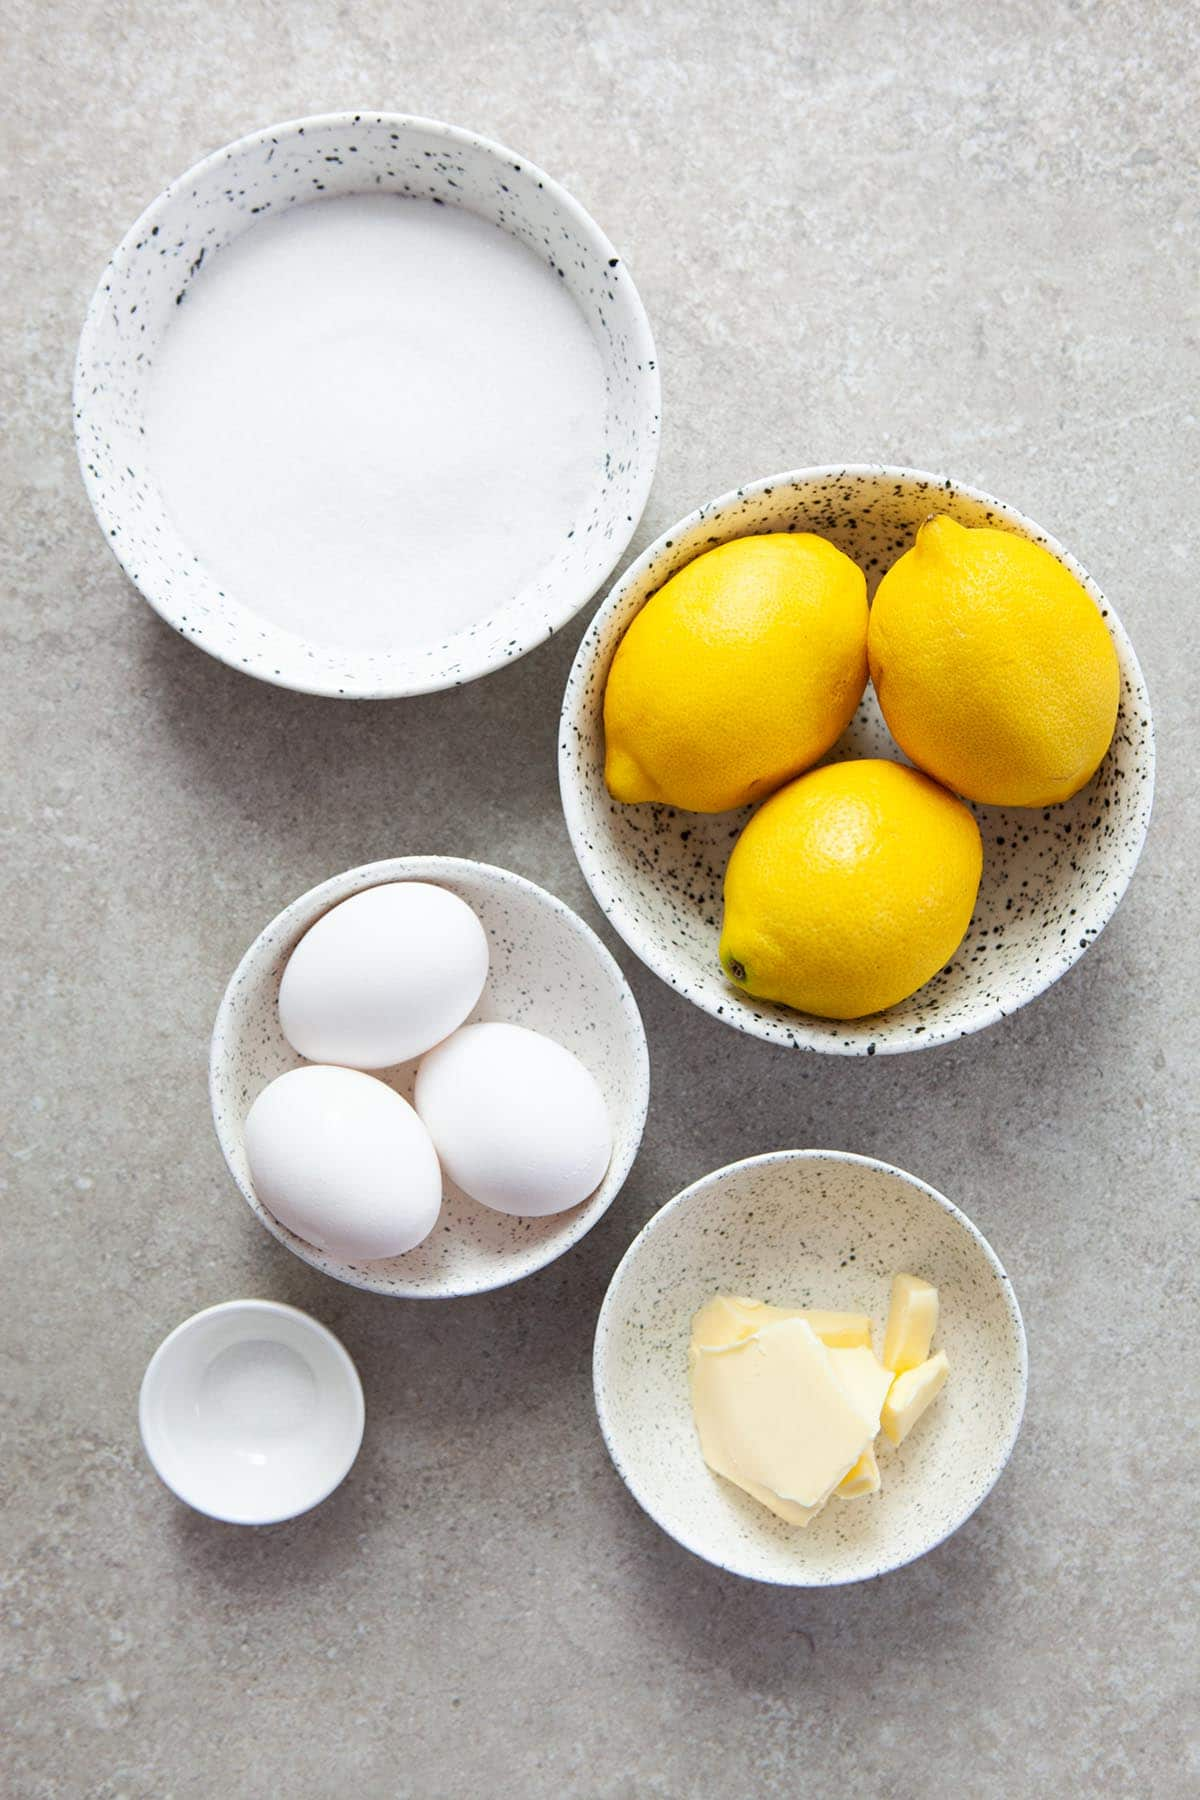 Ingredients to make lemon curd laid out in small bowls on a stone surface.